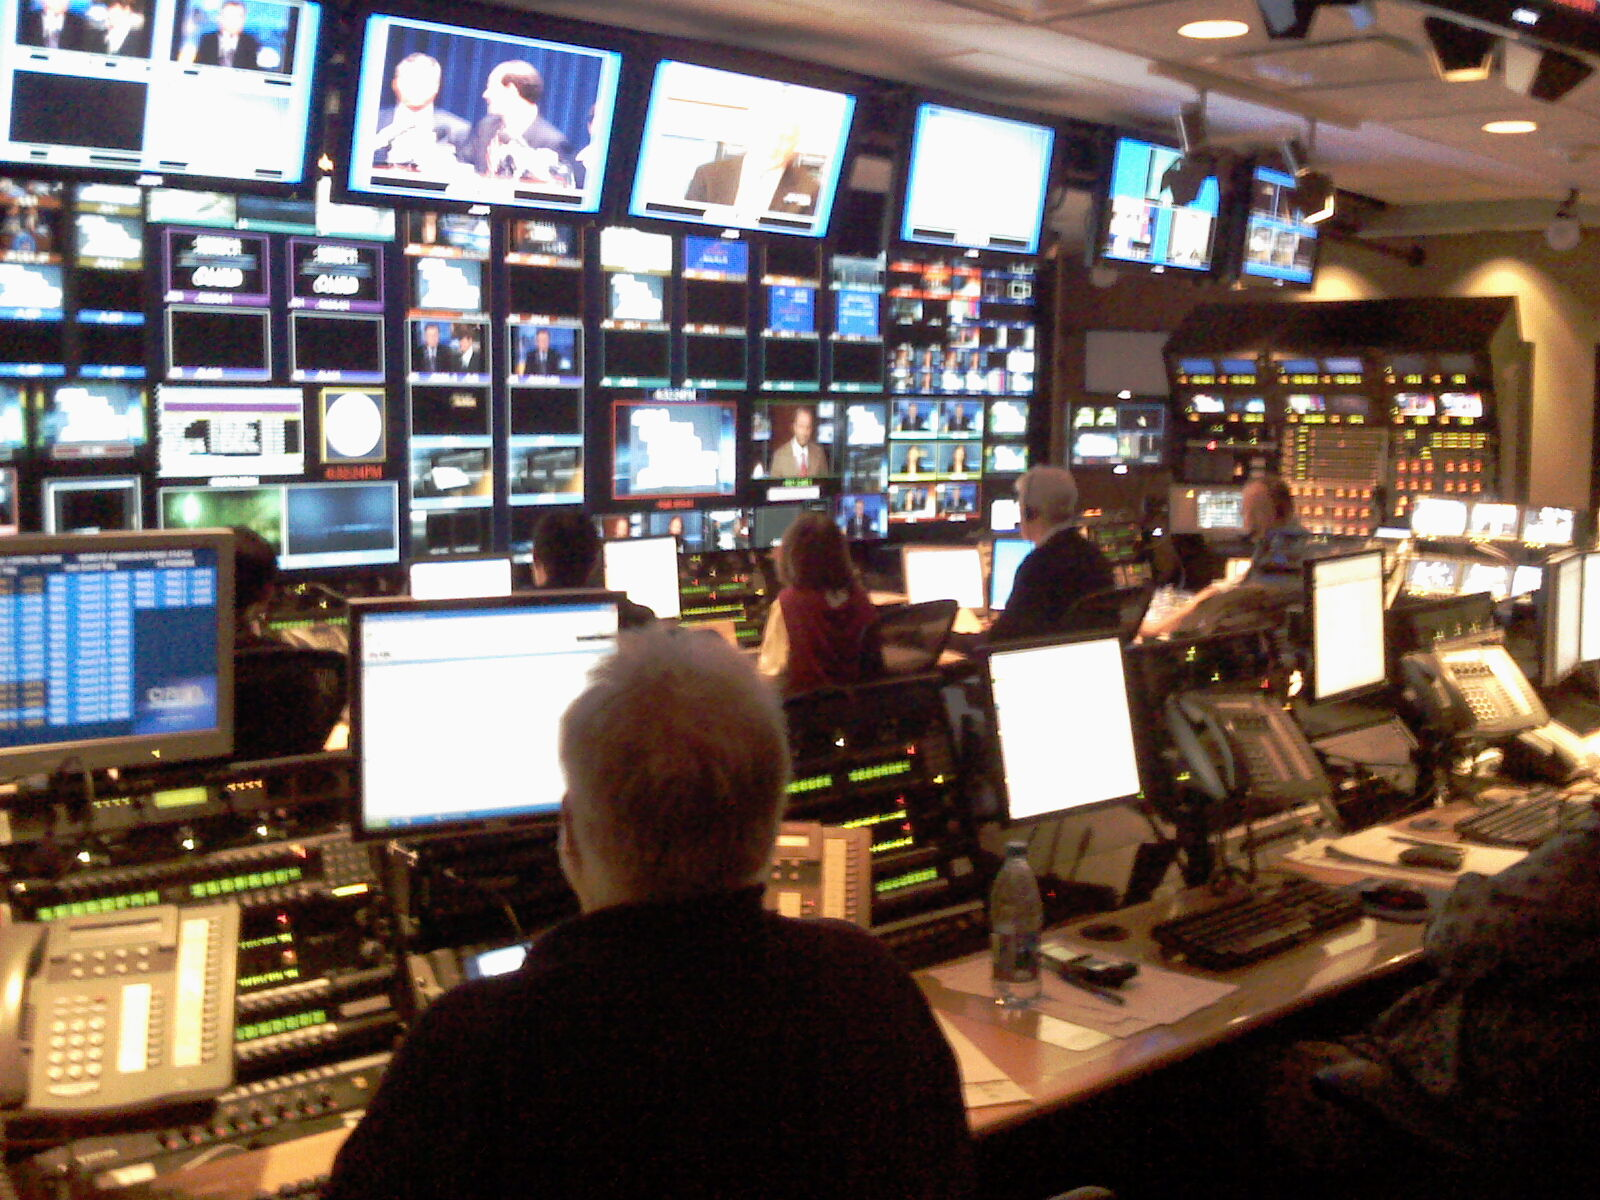 Control Room NBC News